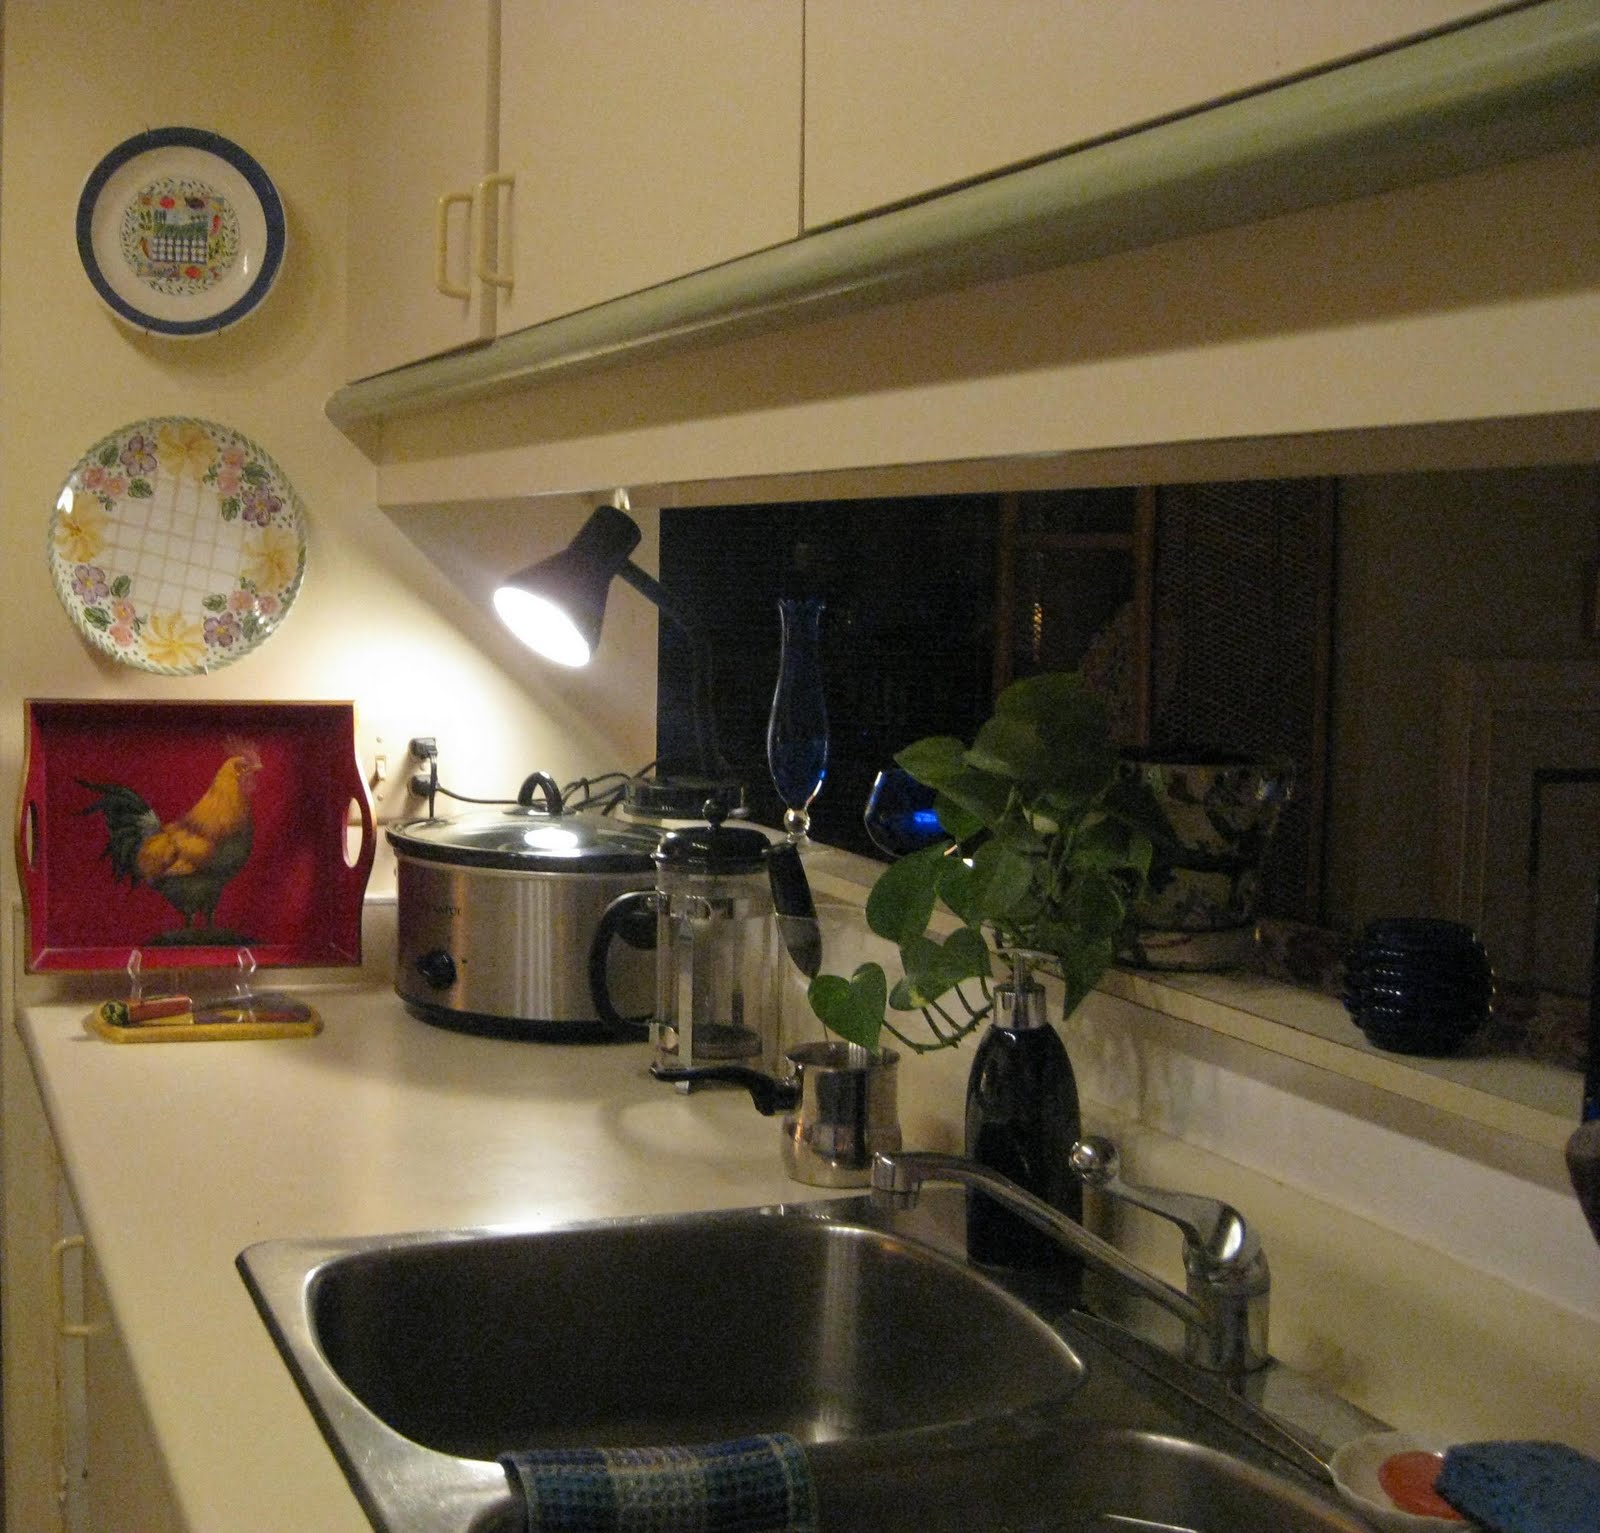 Hilary Farr Kitchen Designs: A Majority Of Two: The World's Smallest Kitchen